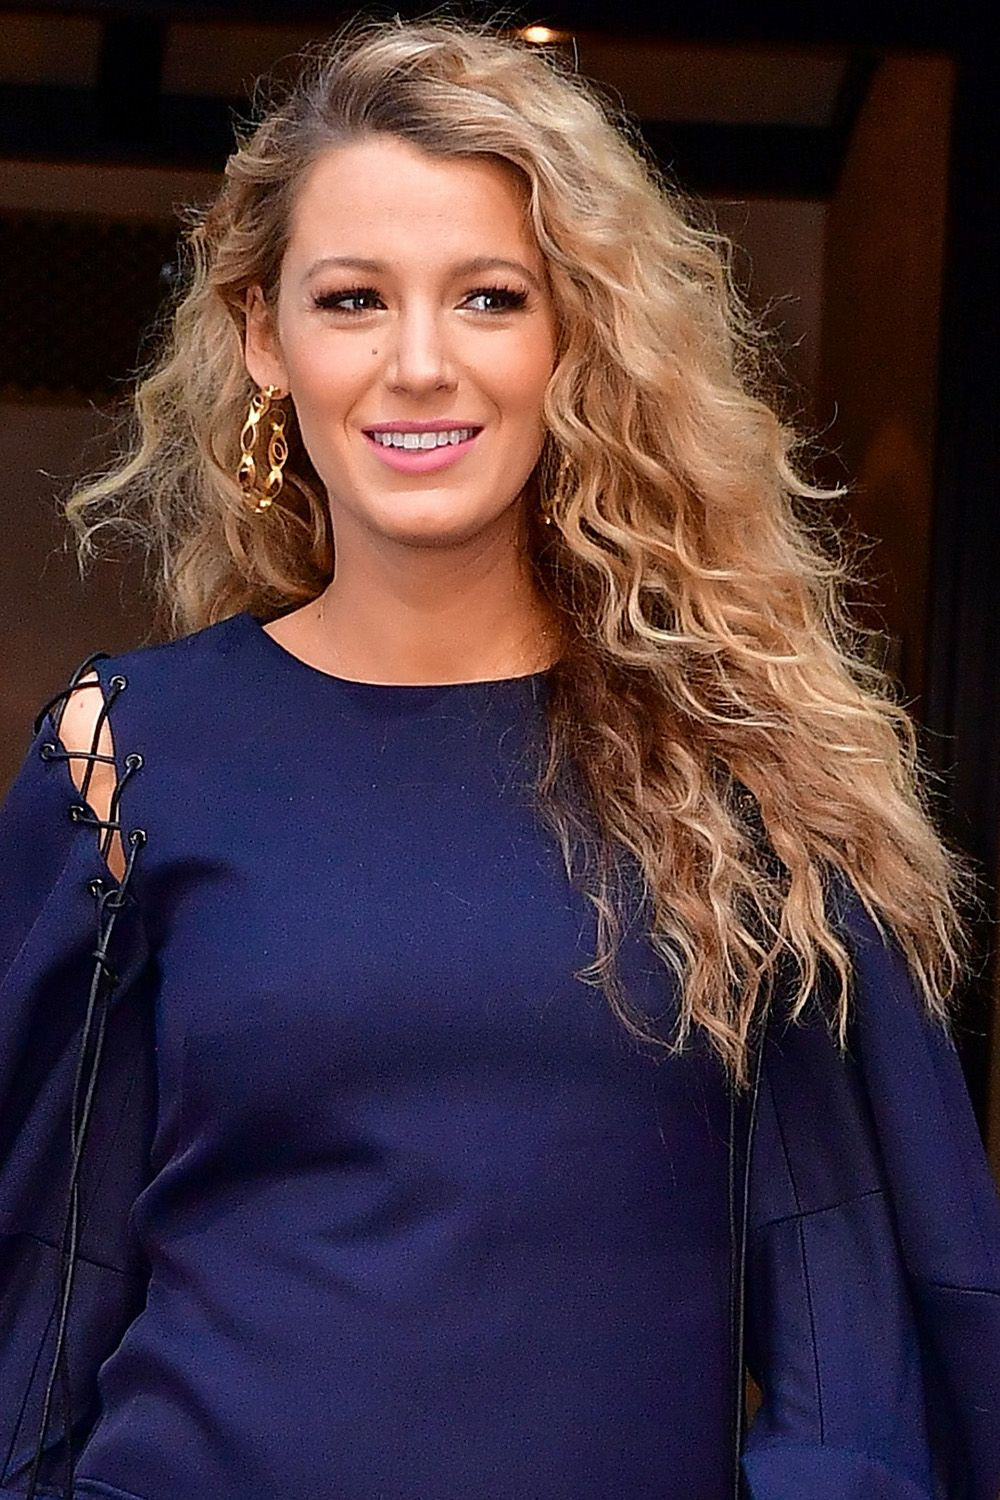 <p>Just when we thought Blake Lively's hair couldn't reach any more levels of perfection, she stepped-put with these springy curls this past summer.</p>